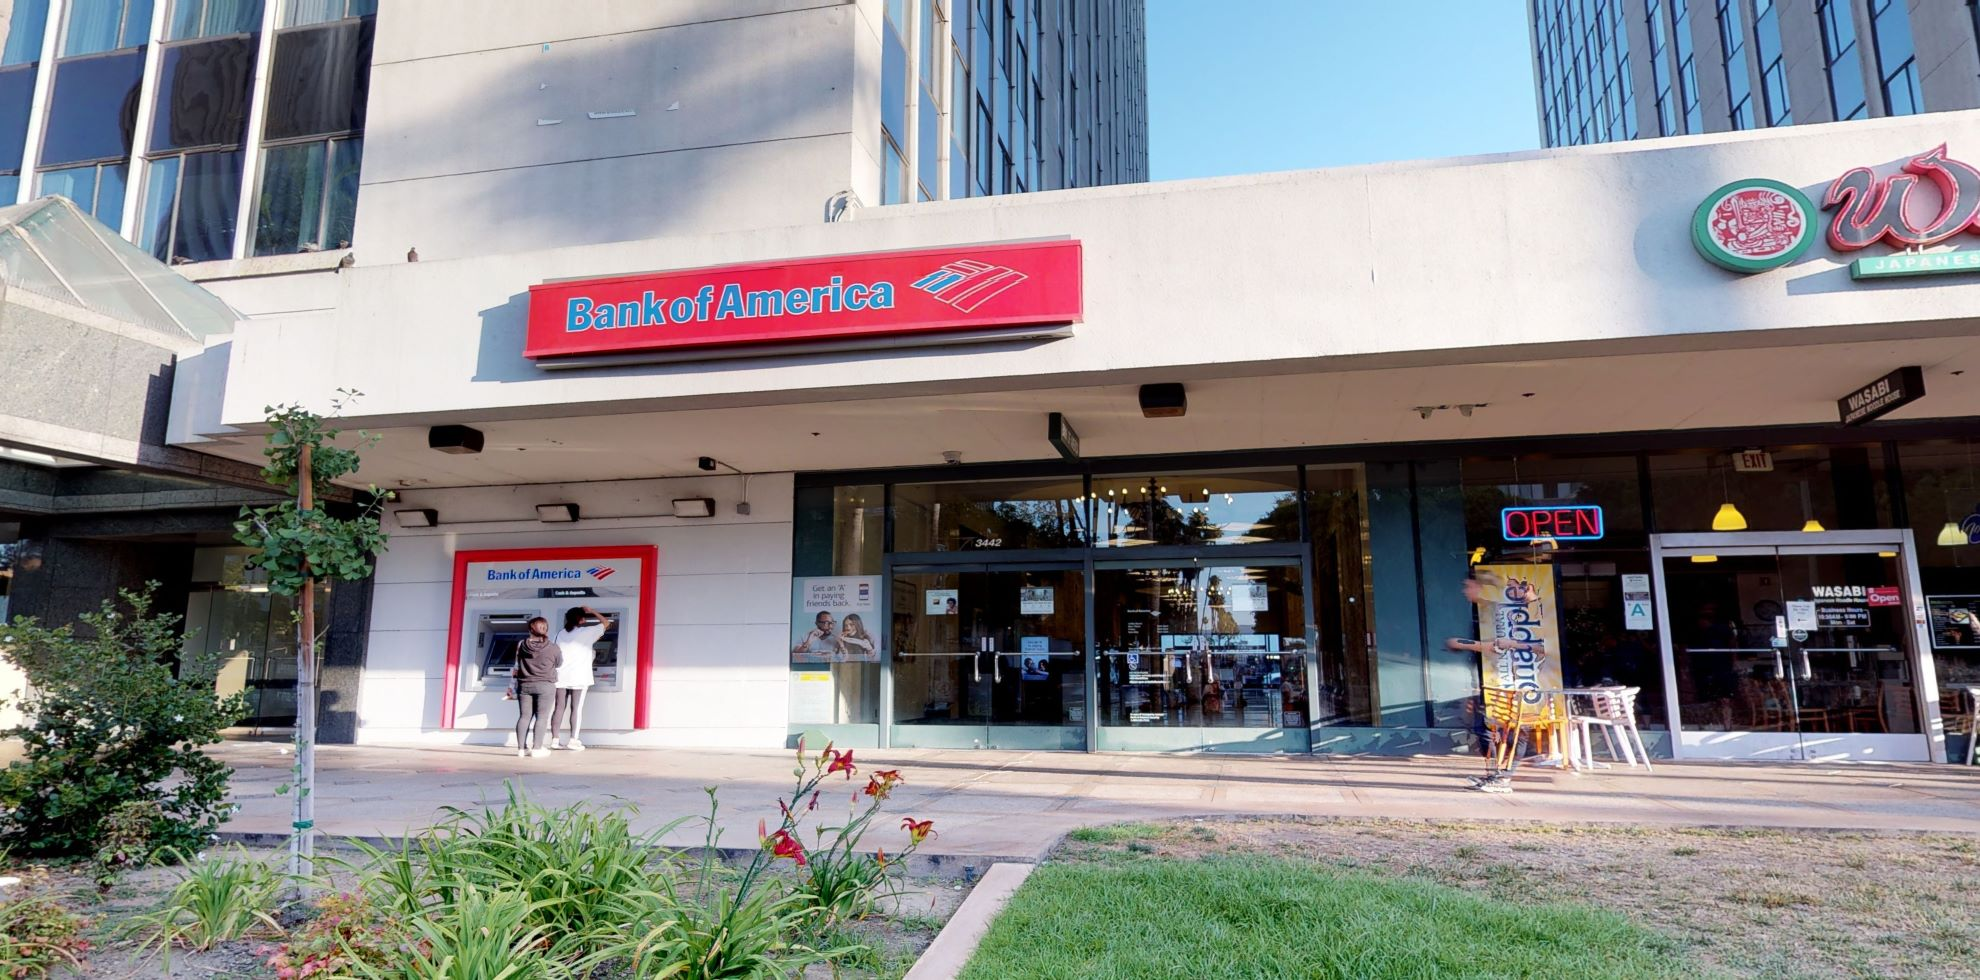 Bank of America financial center with walk-up ATM | 3442 Wilshire Blvd, Los Angeles, CA 90010